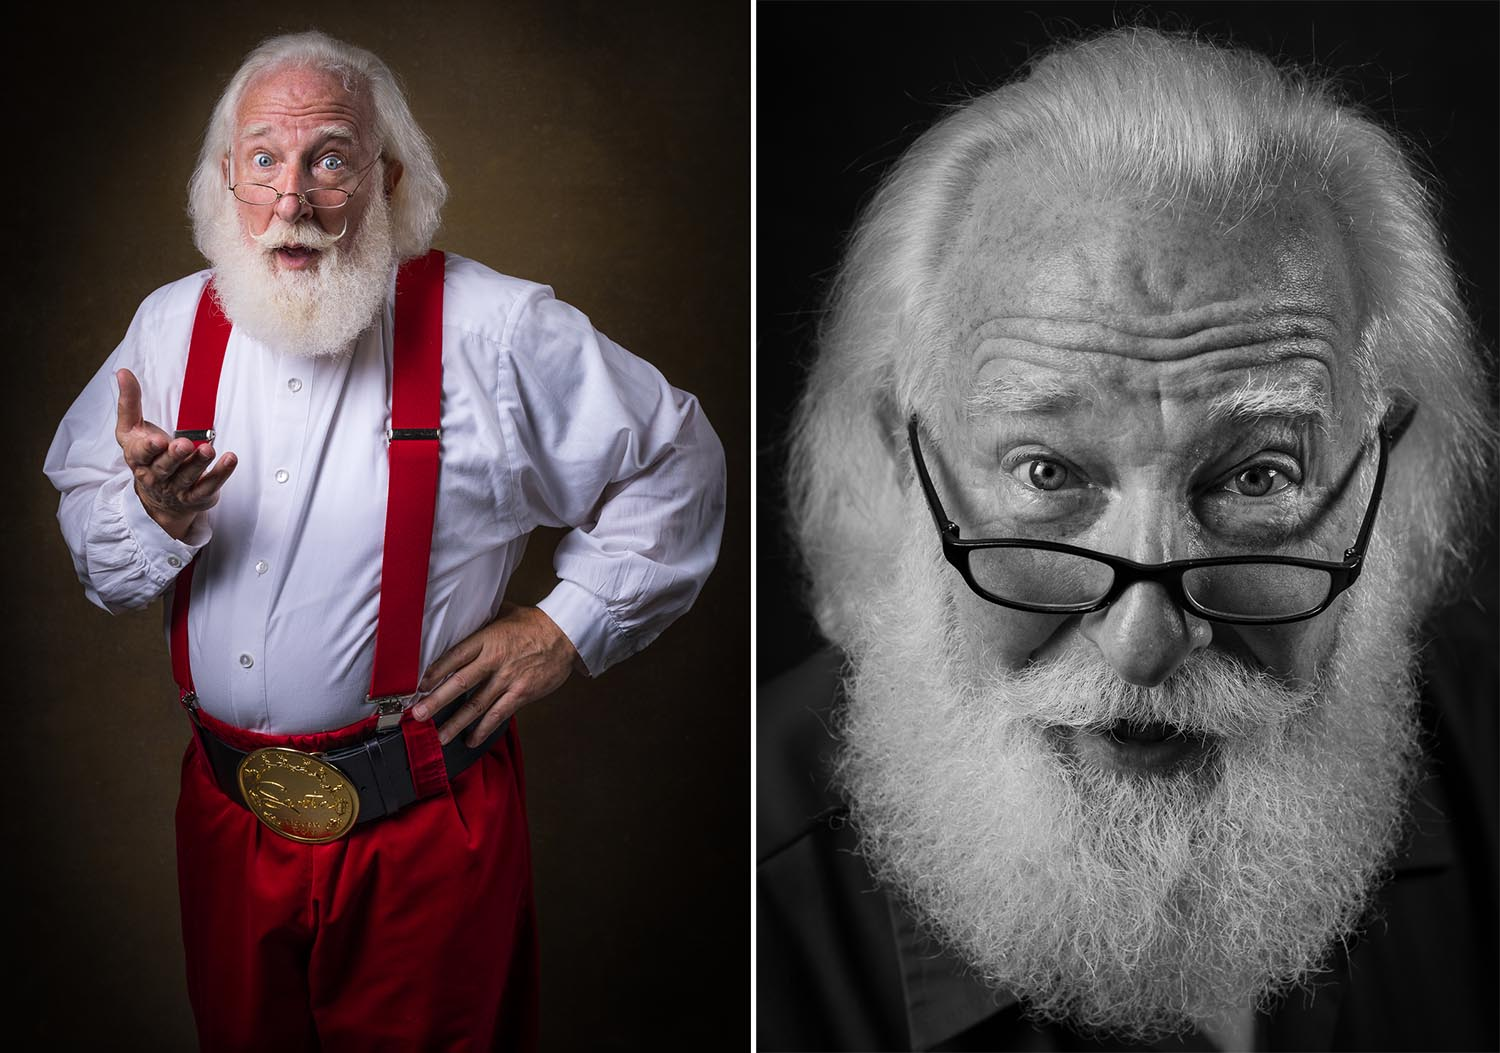 "Cooper notes that many of the men portraying Santa are not outwardly religious or even Christian. Rick Rosenthal of Atlanta, Georgia is an Orthodox Jew who has been a professional Santa for many years. His rabbi calls him Santa Rick ""Frozenthal."""